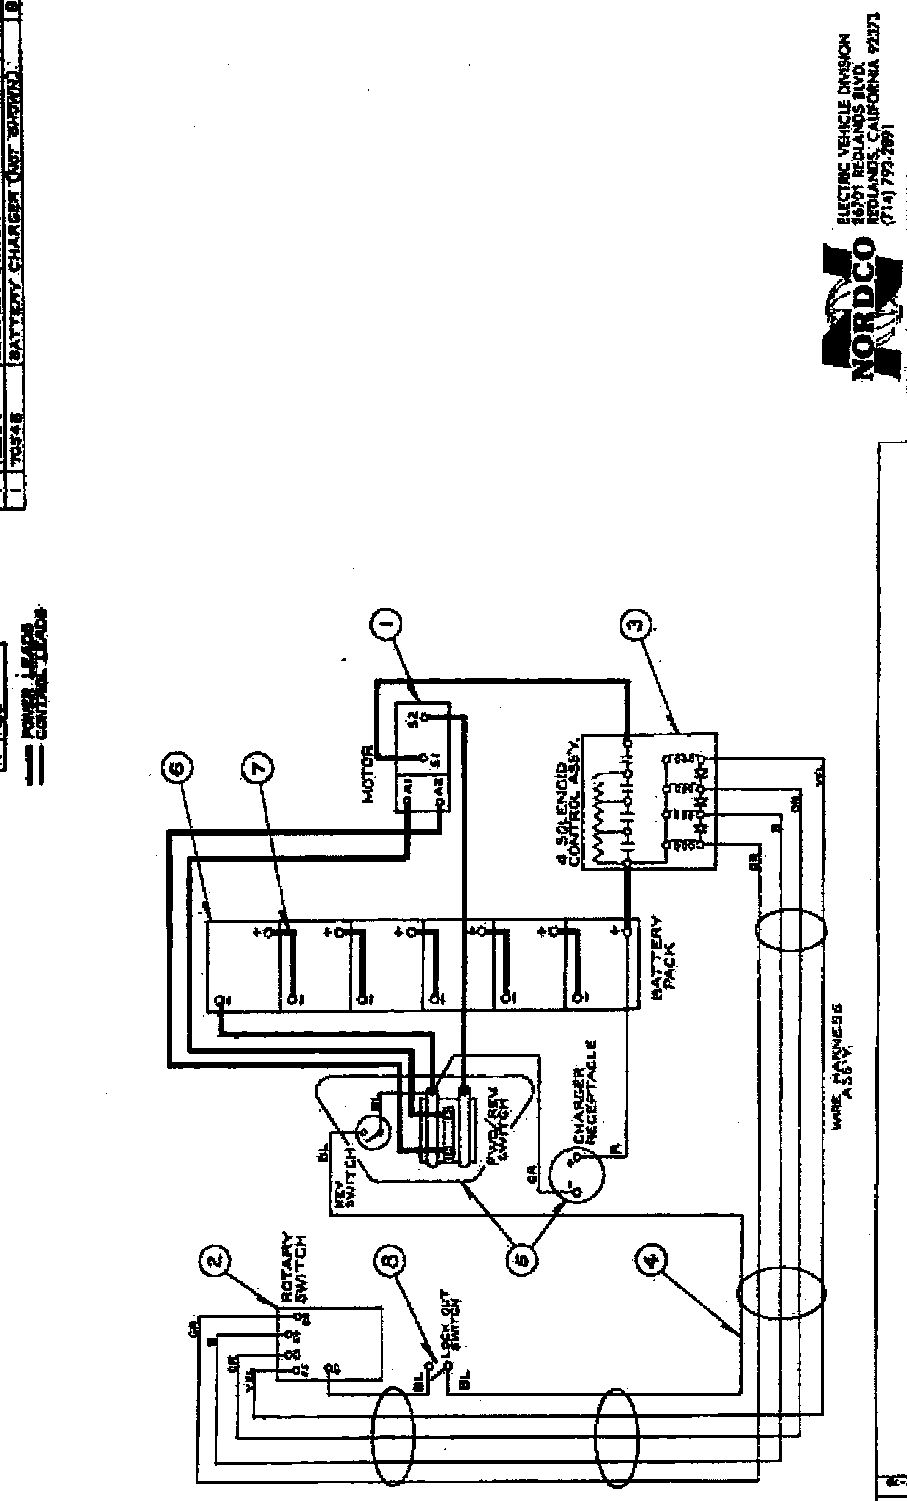 wiring diagram for harley davidson golf cart images ez go golf cart wiring diagram in addition harley davidson golf cart